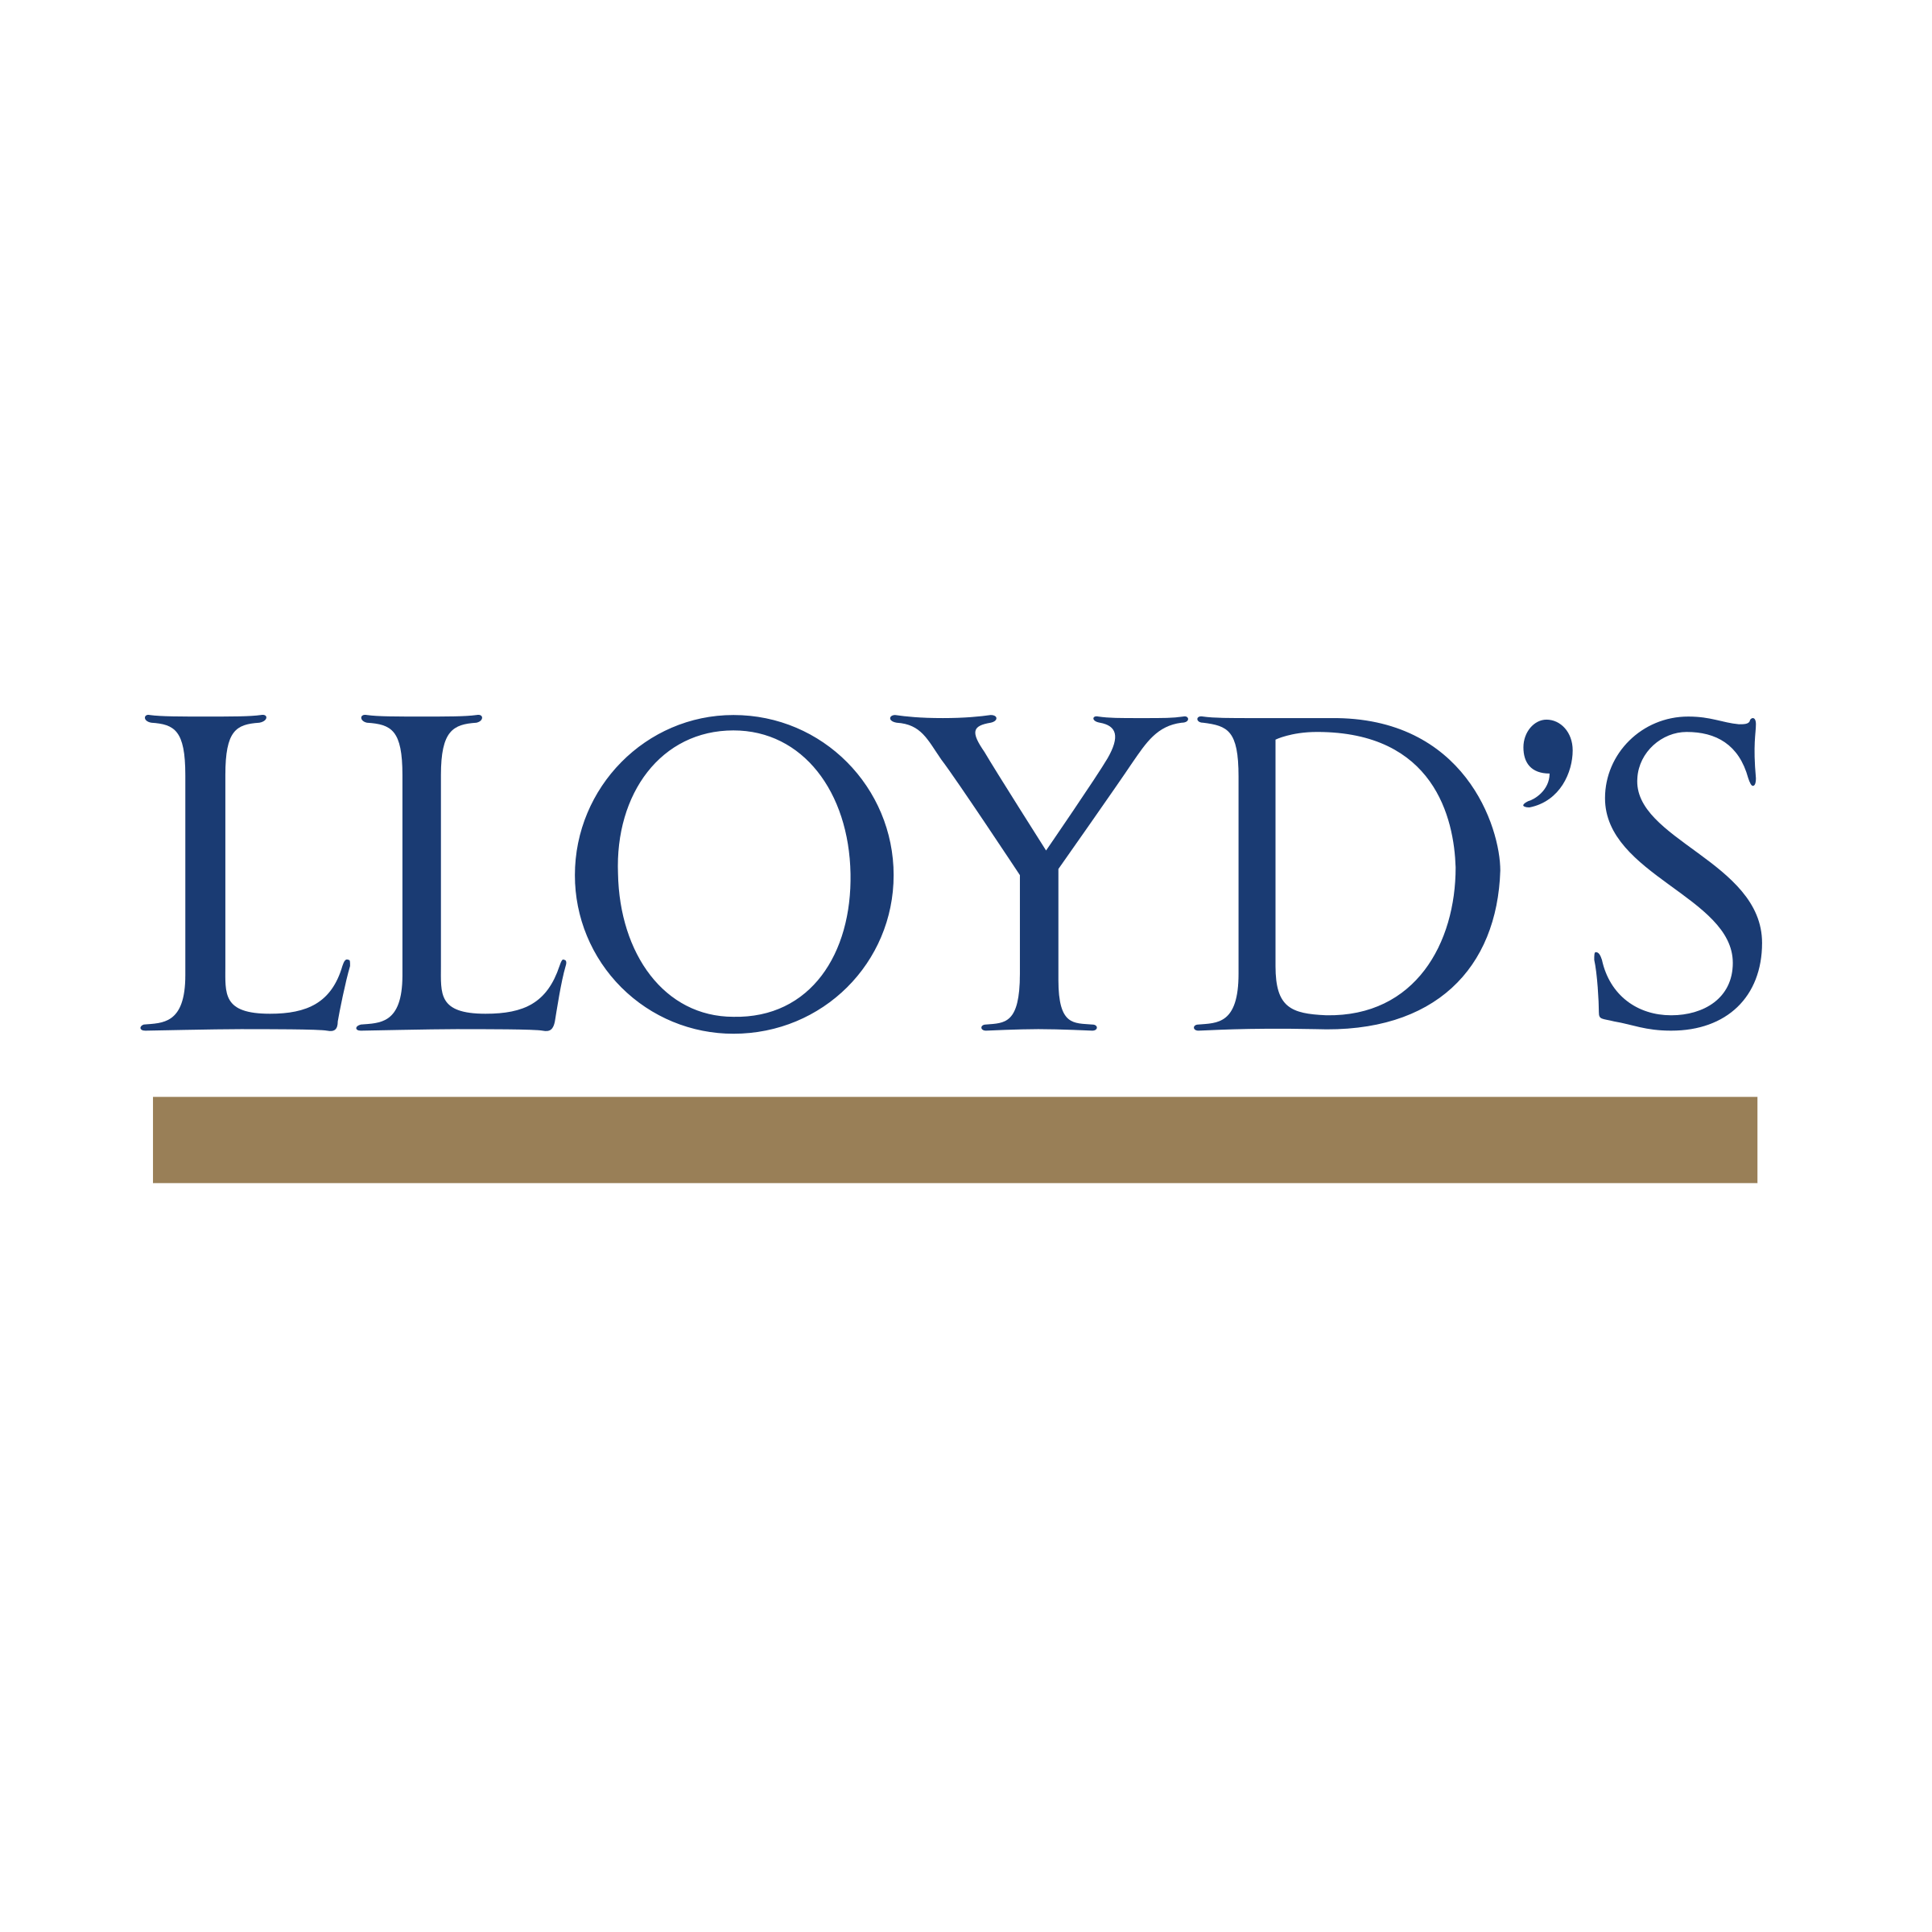 assurance Lloyds courtier assureur paris